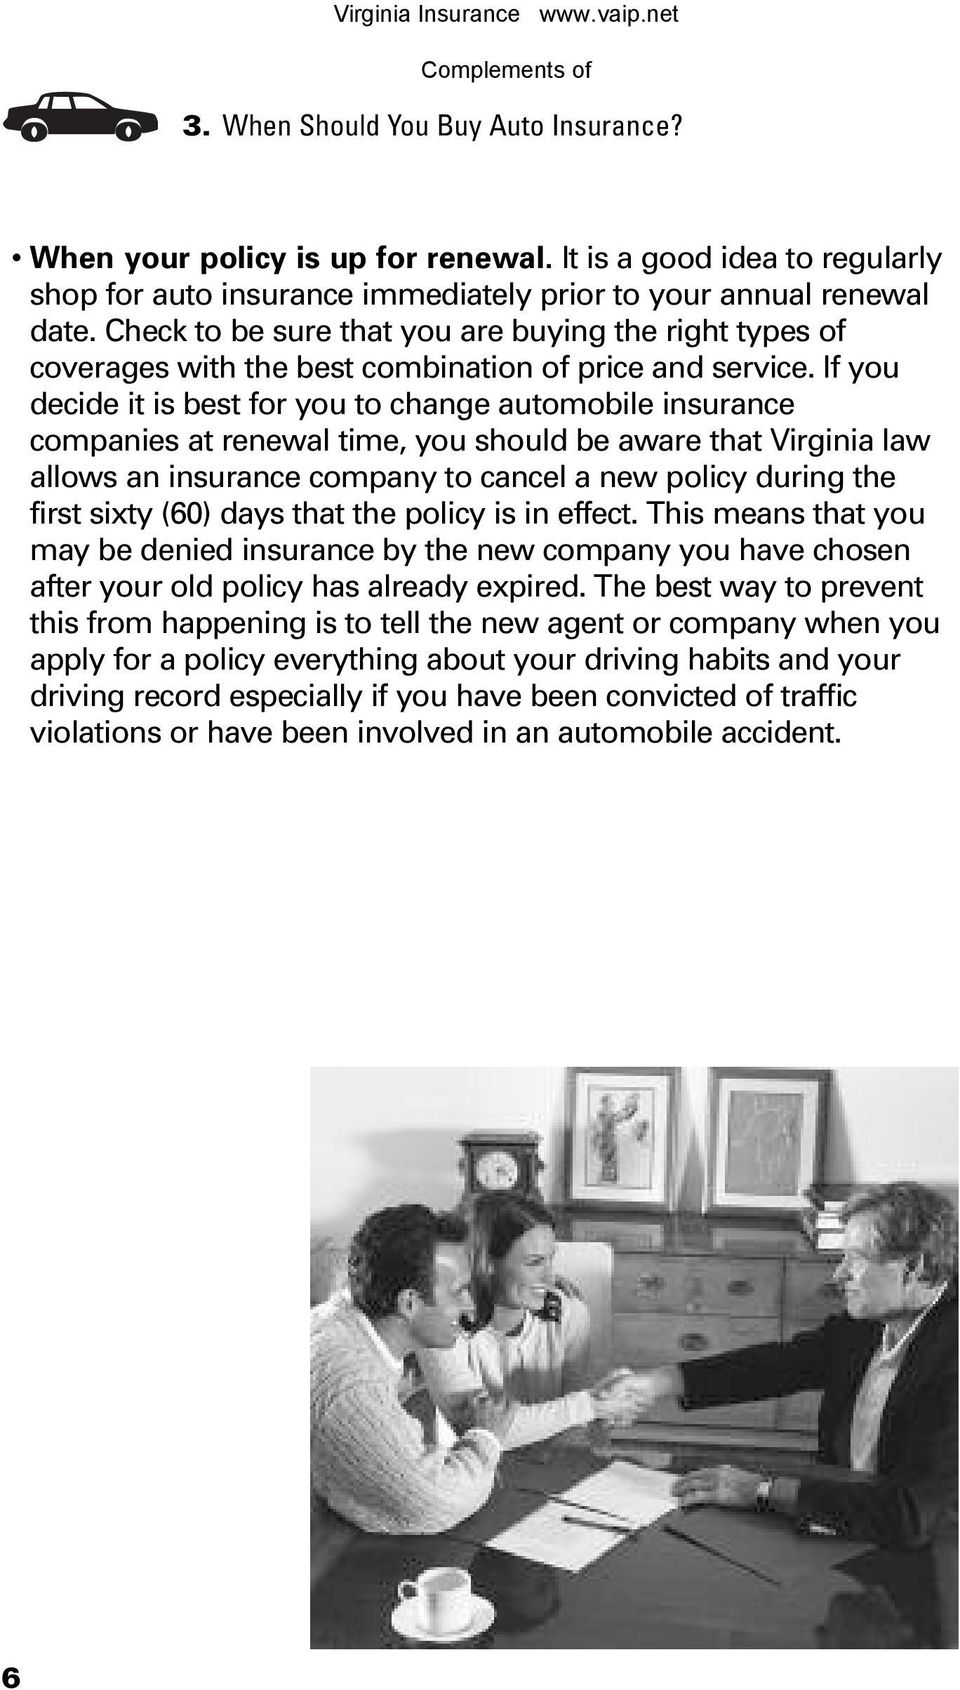 If you decide it is best for you to change automobile insurance companies at renewal time, you should be aware that Virginia law allows an insurance company to cancel a new policy during the first